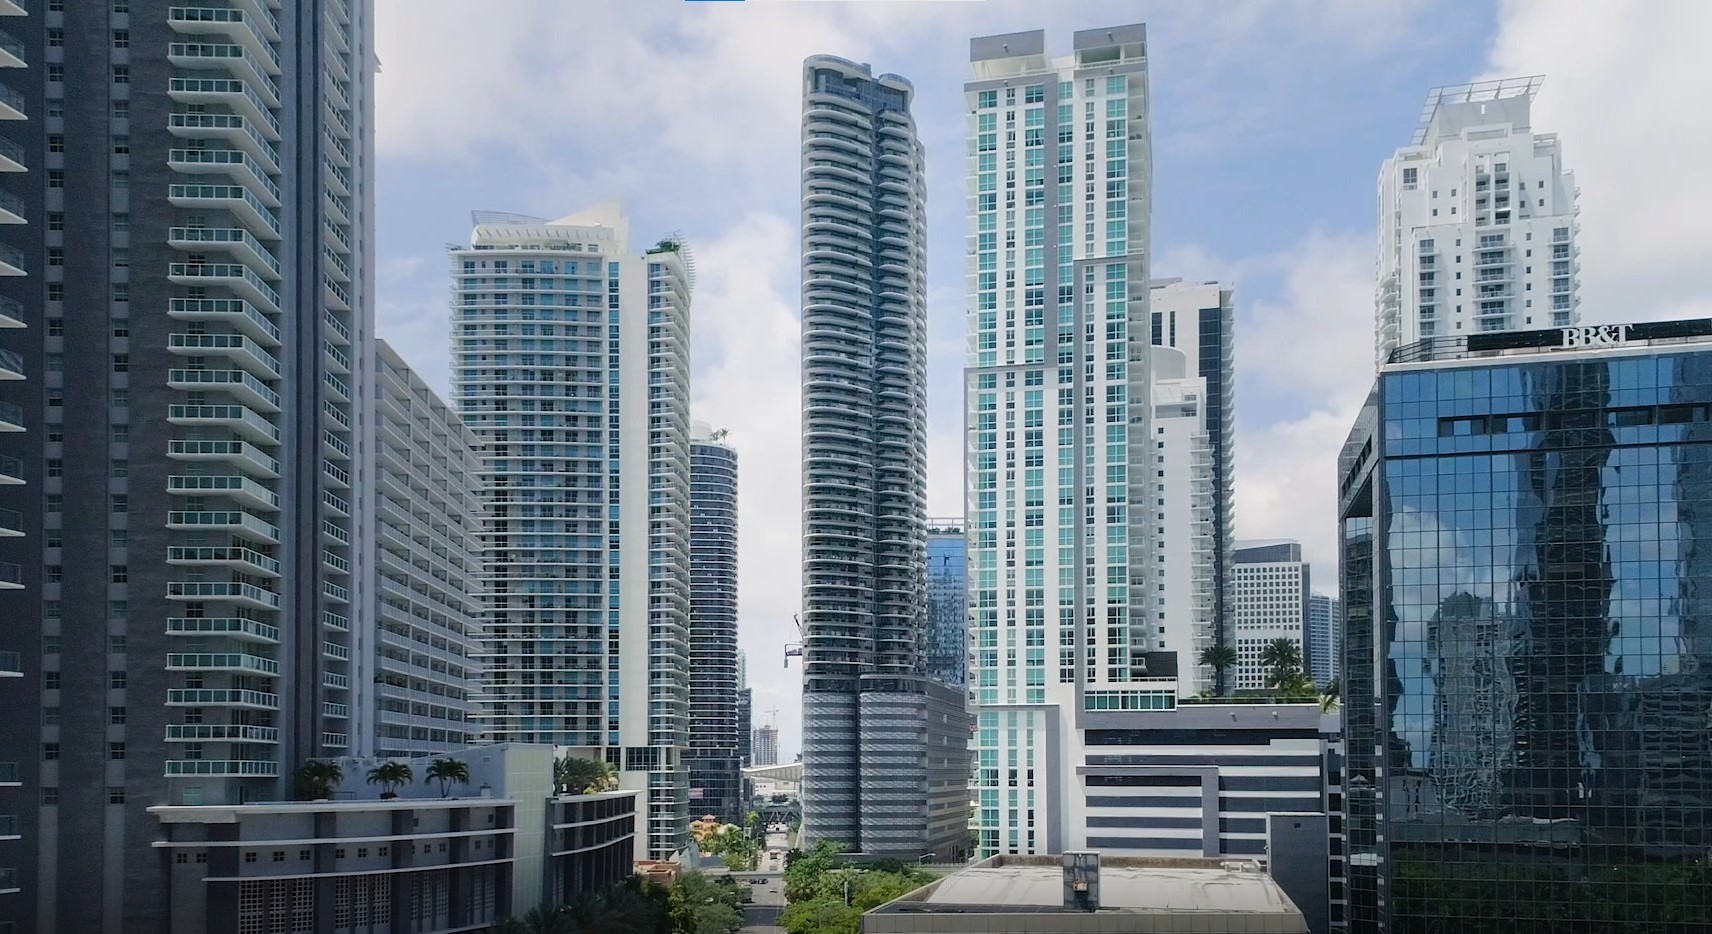 Brickell flatiron is a 64-story residential high rise in Miami, Florida.